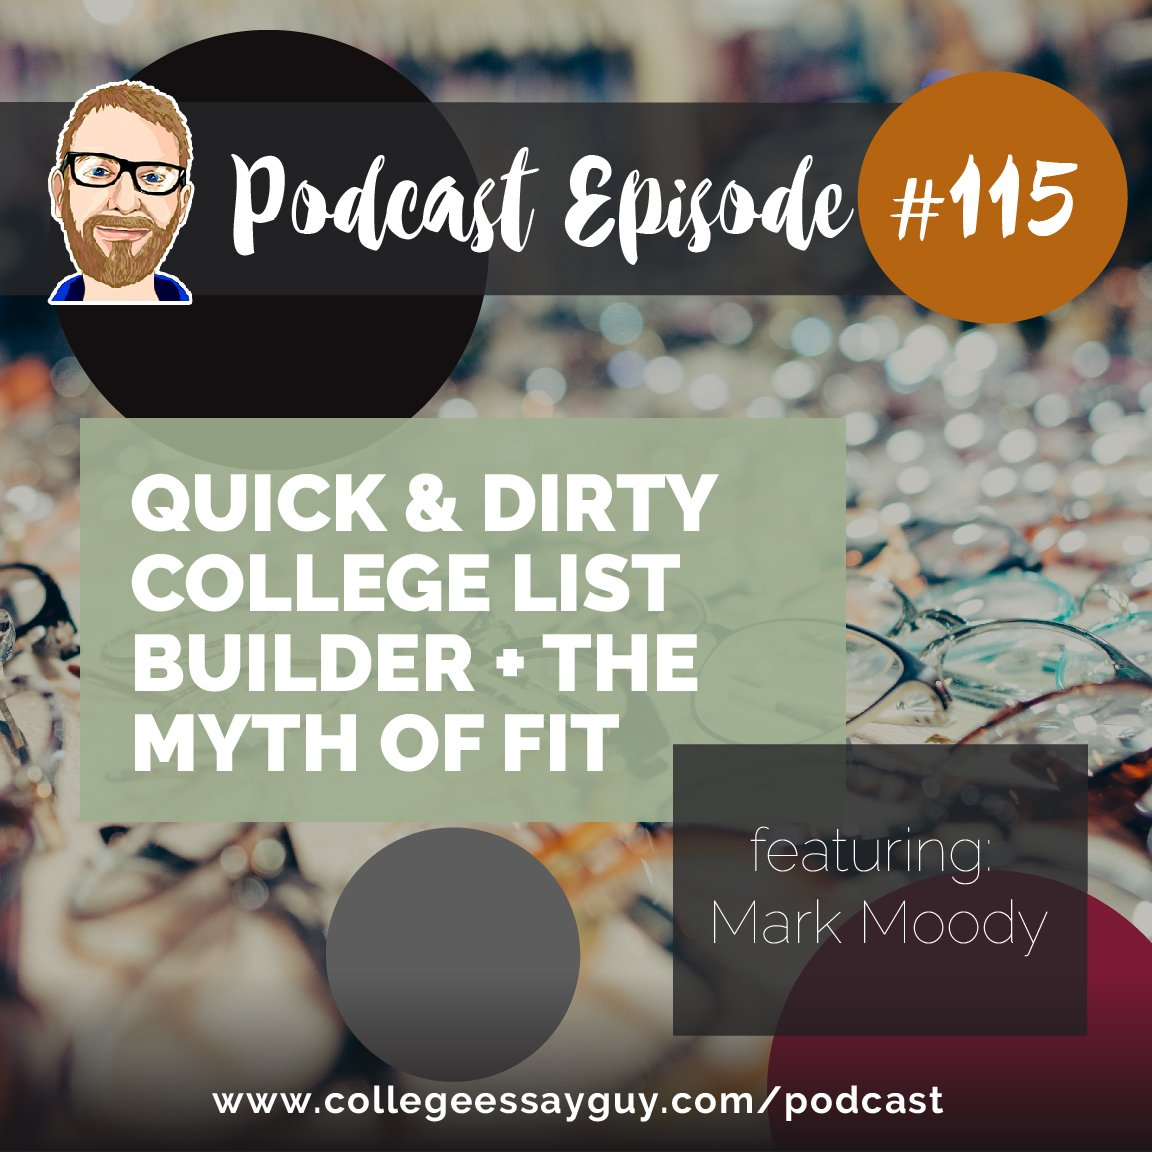 On this episode, I speak with Mark Moody, a friend of mine and a fantastic counselor with a ton of experience and some cool opinions about college admissions you may not have heard before. 🎧 Listen: goo.gl/ejaJXq